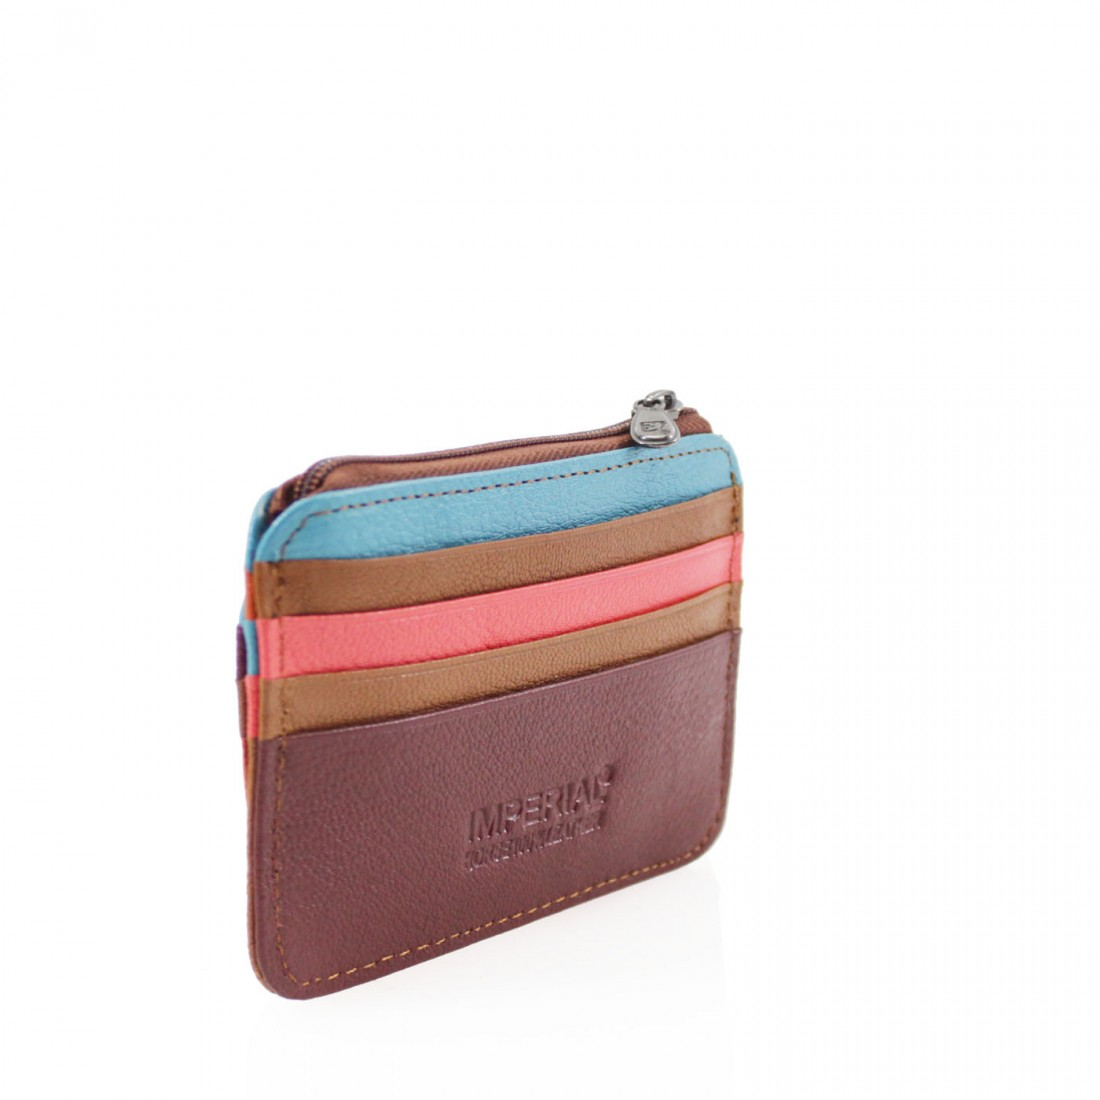 Leather Card Wallet/Purse - Various Mixed Colour